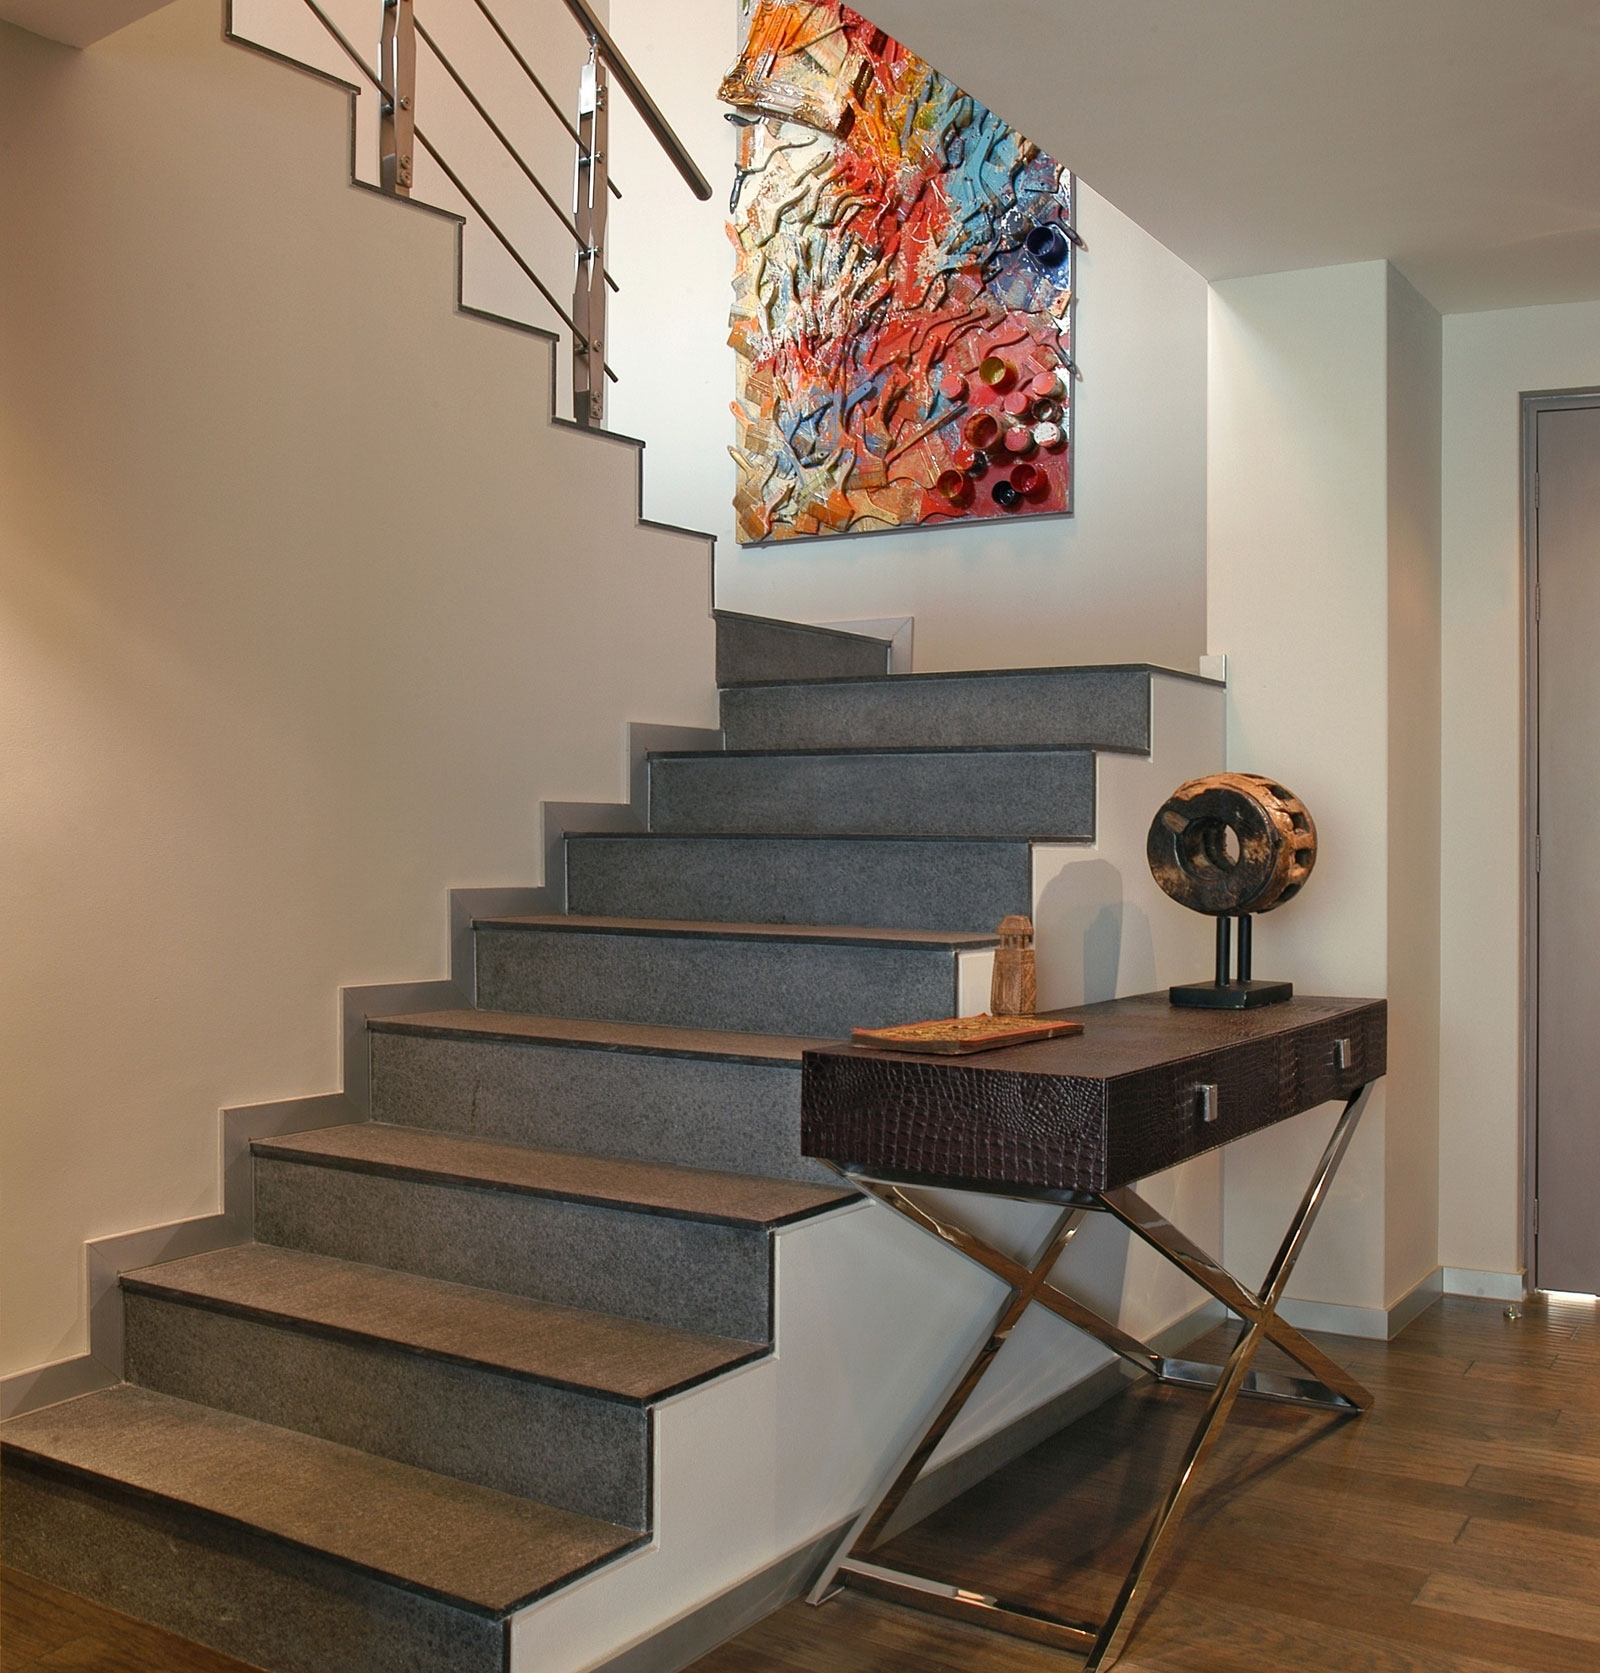 Staircase Wall Decorating Ideas | Home Decor & Furniture Throughout Most Recently Released Staircase Wall Accents (View 4 of 15)